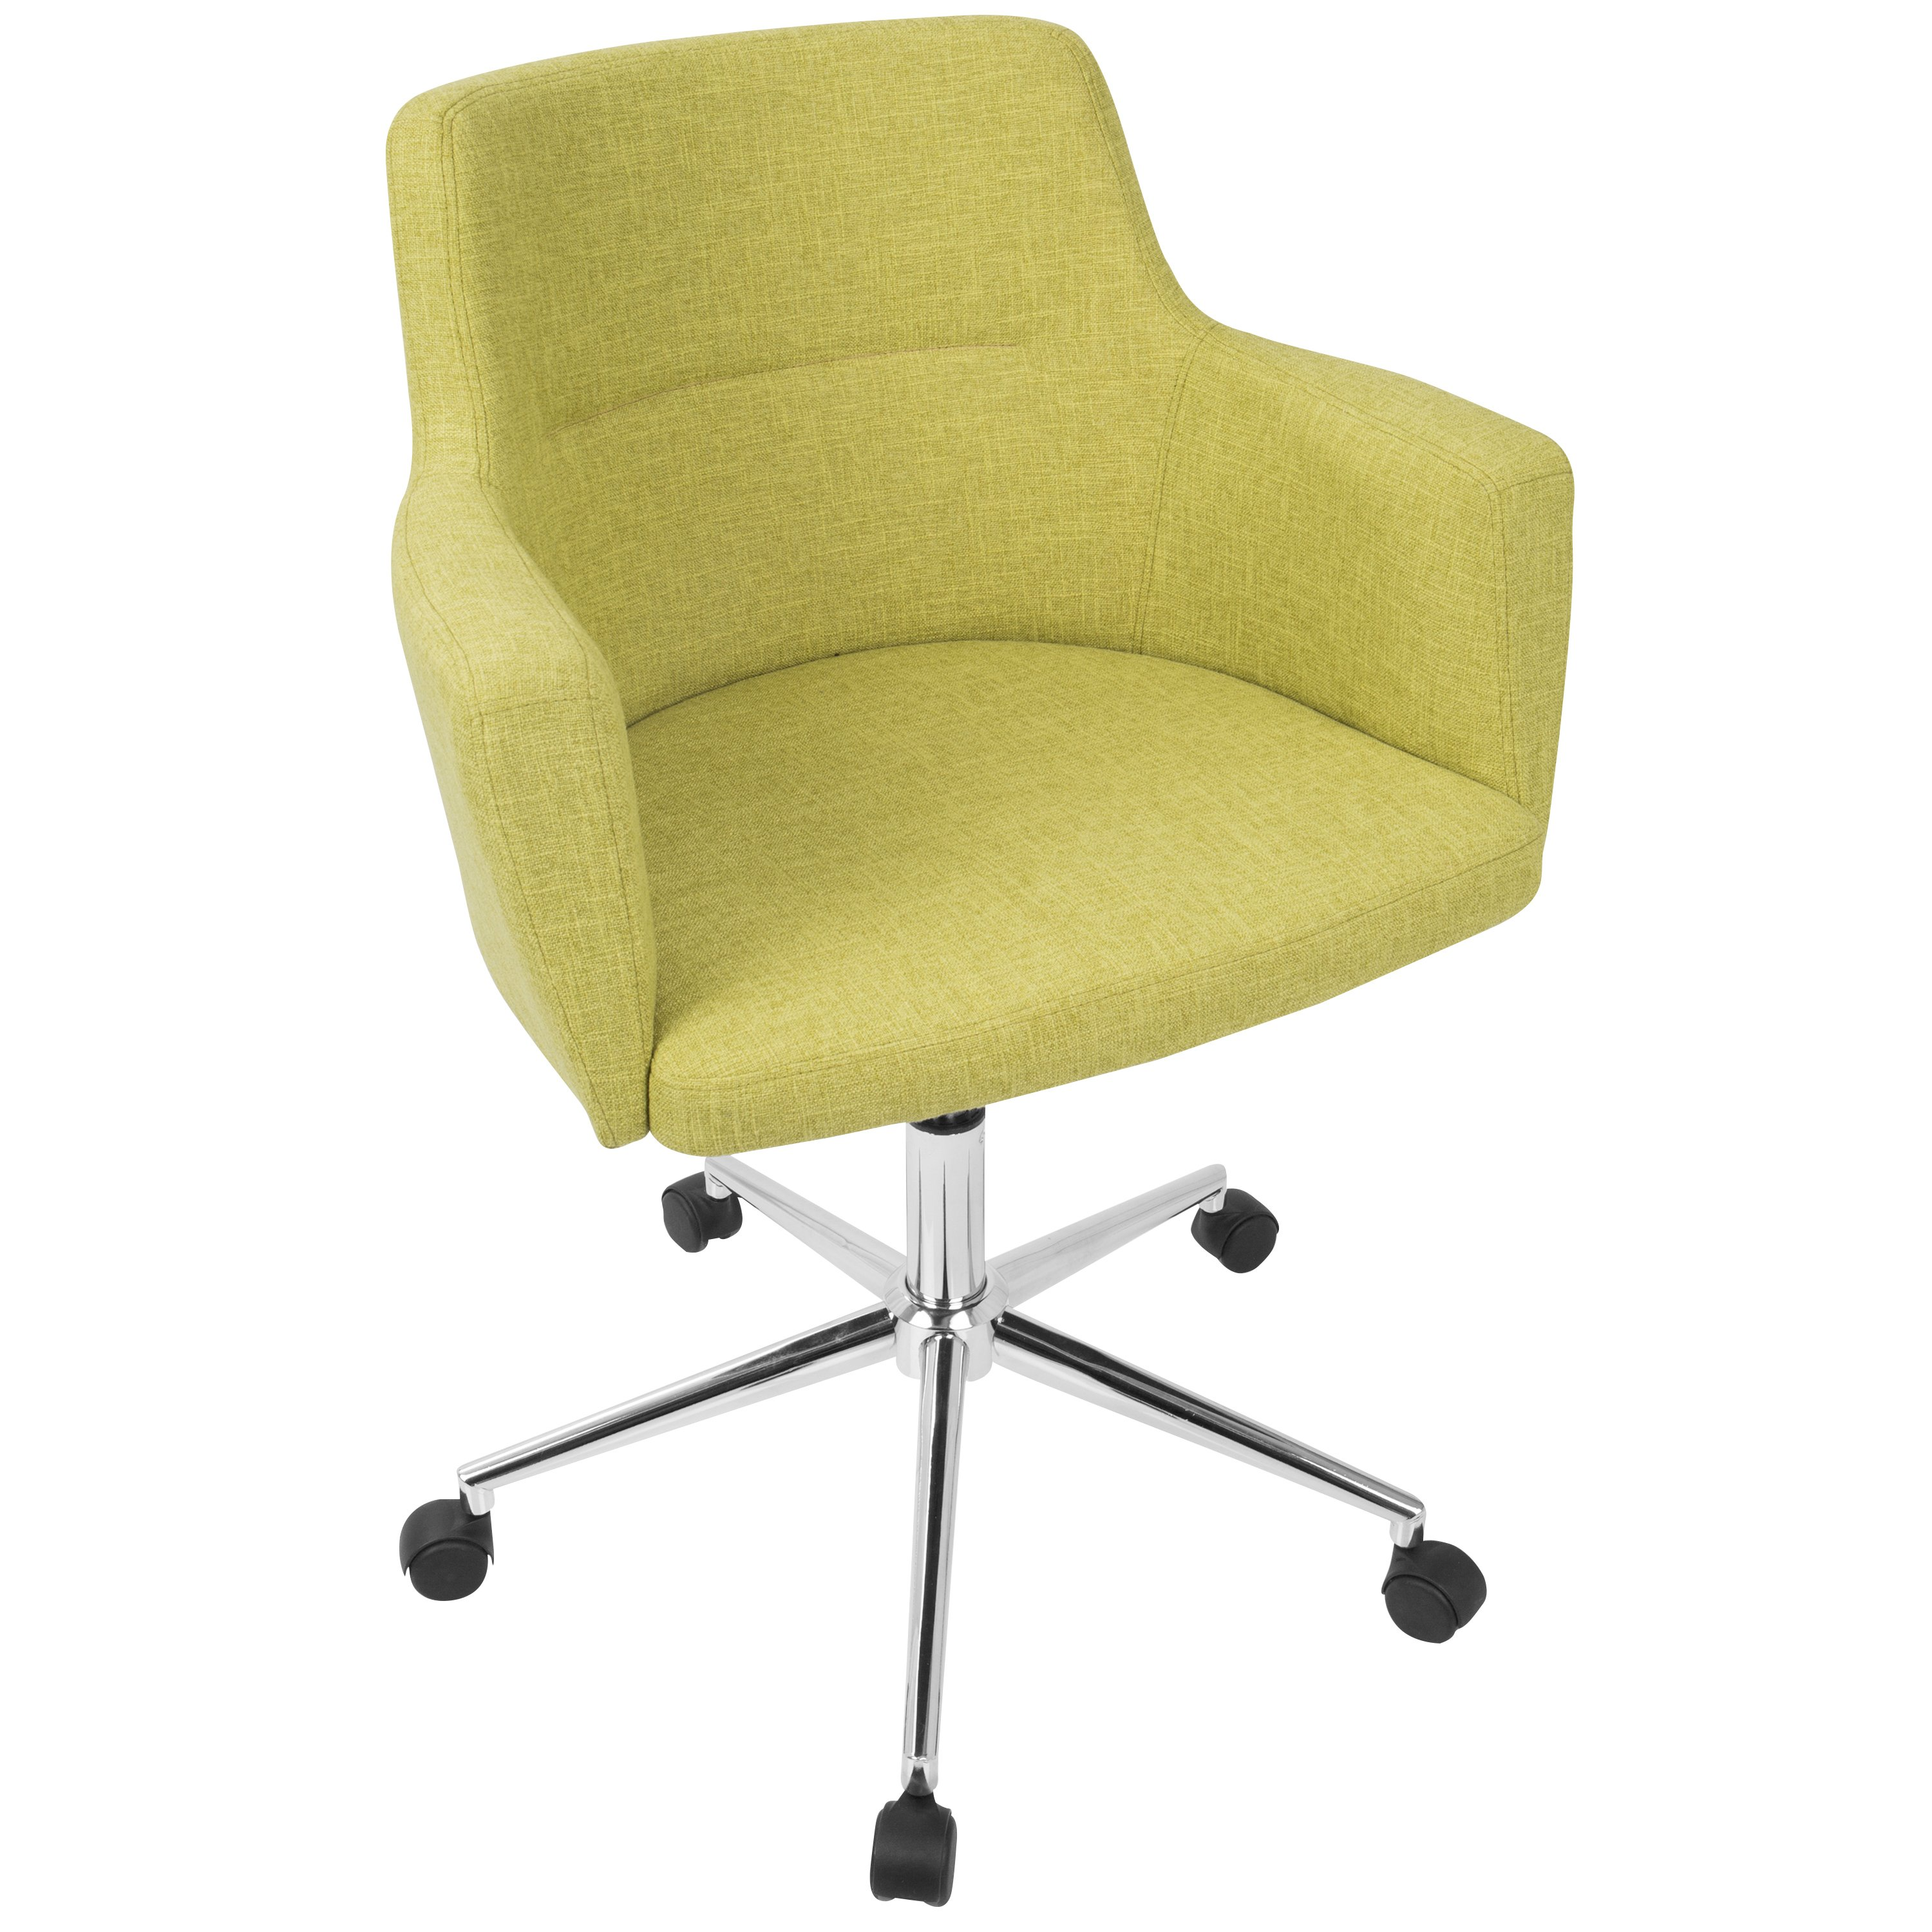 Shop Andrew Contemporary Office Chair in Fabric - On Sale - Free Shipping  Today - Overstock - 16722566